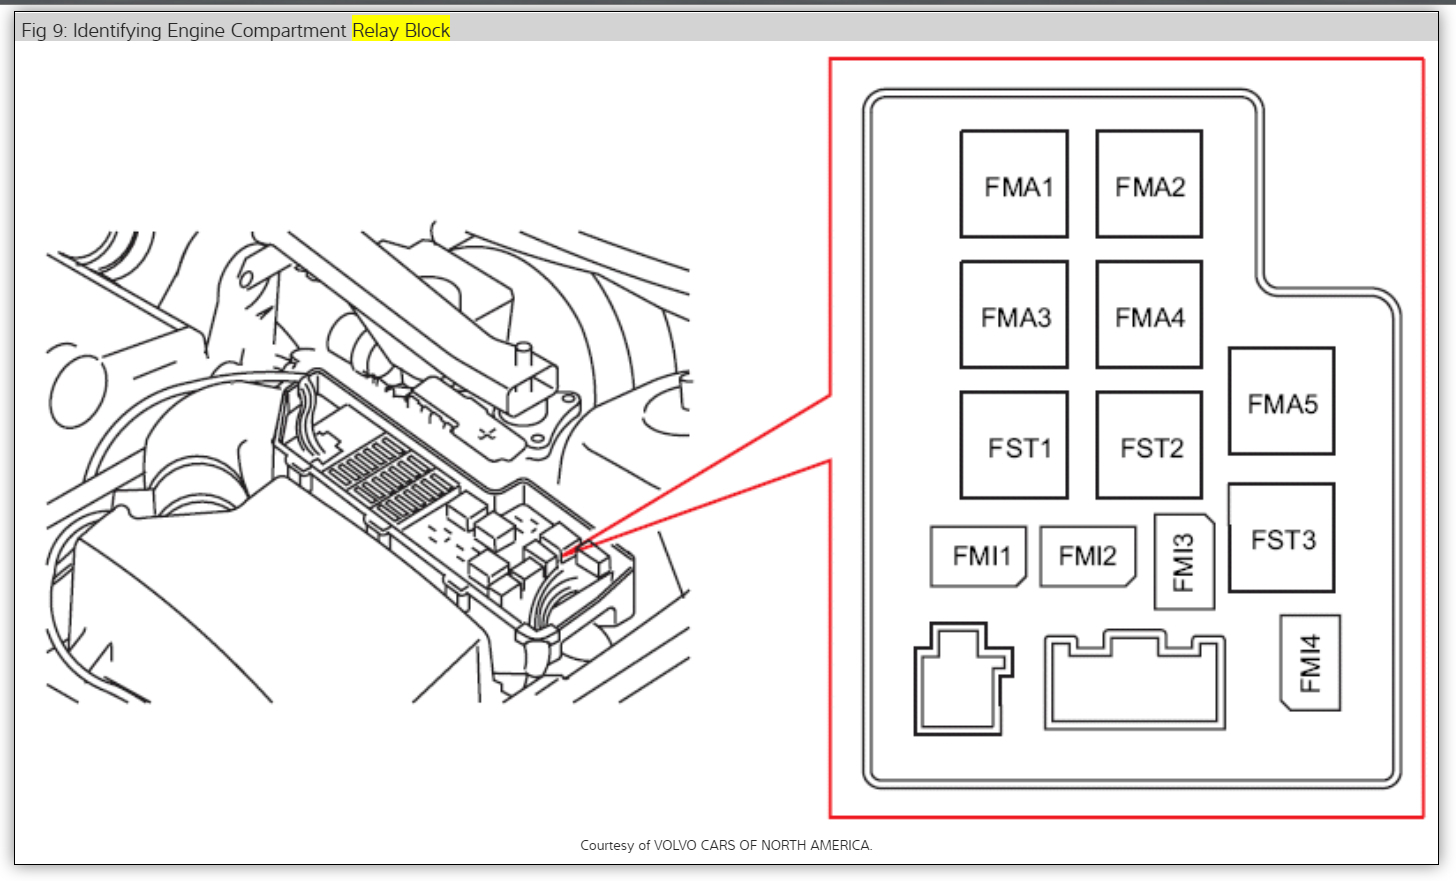 2004 Volvo S40 Fuse Box Manual Guide Wiring Diagram 2003 Xc70 Headlight Imageresizertool Com Location